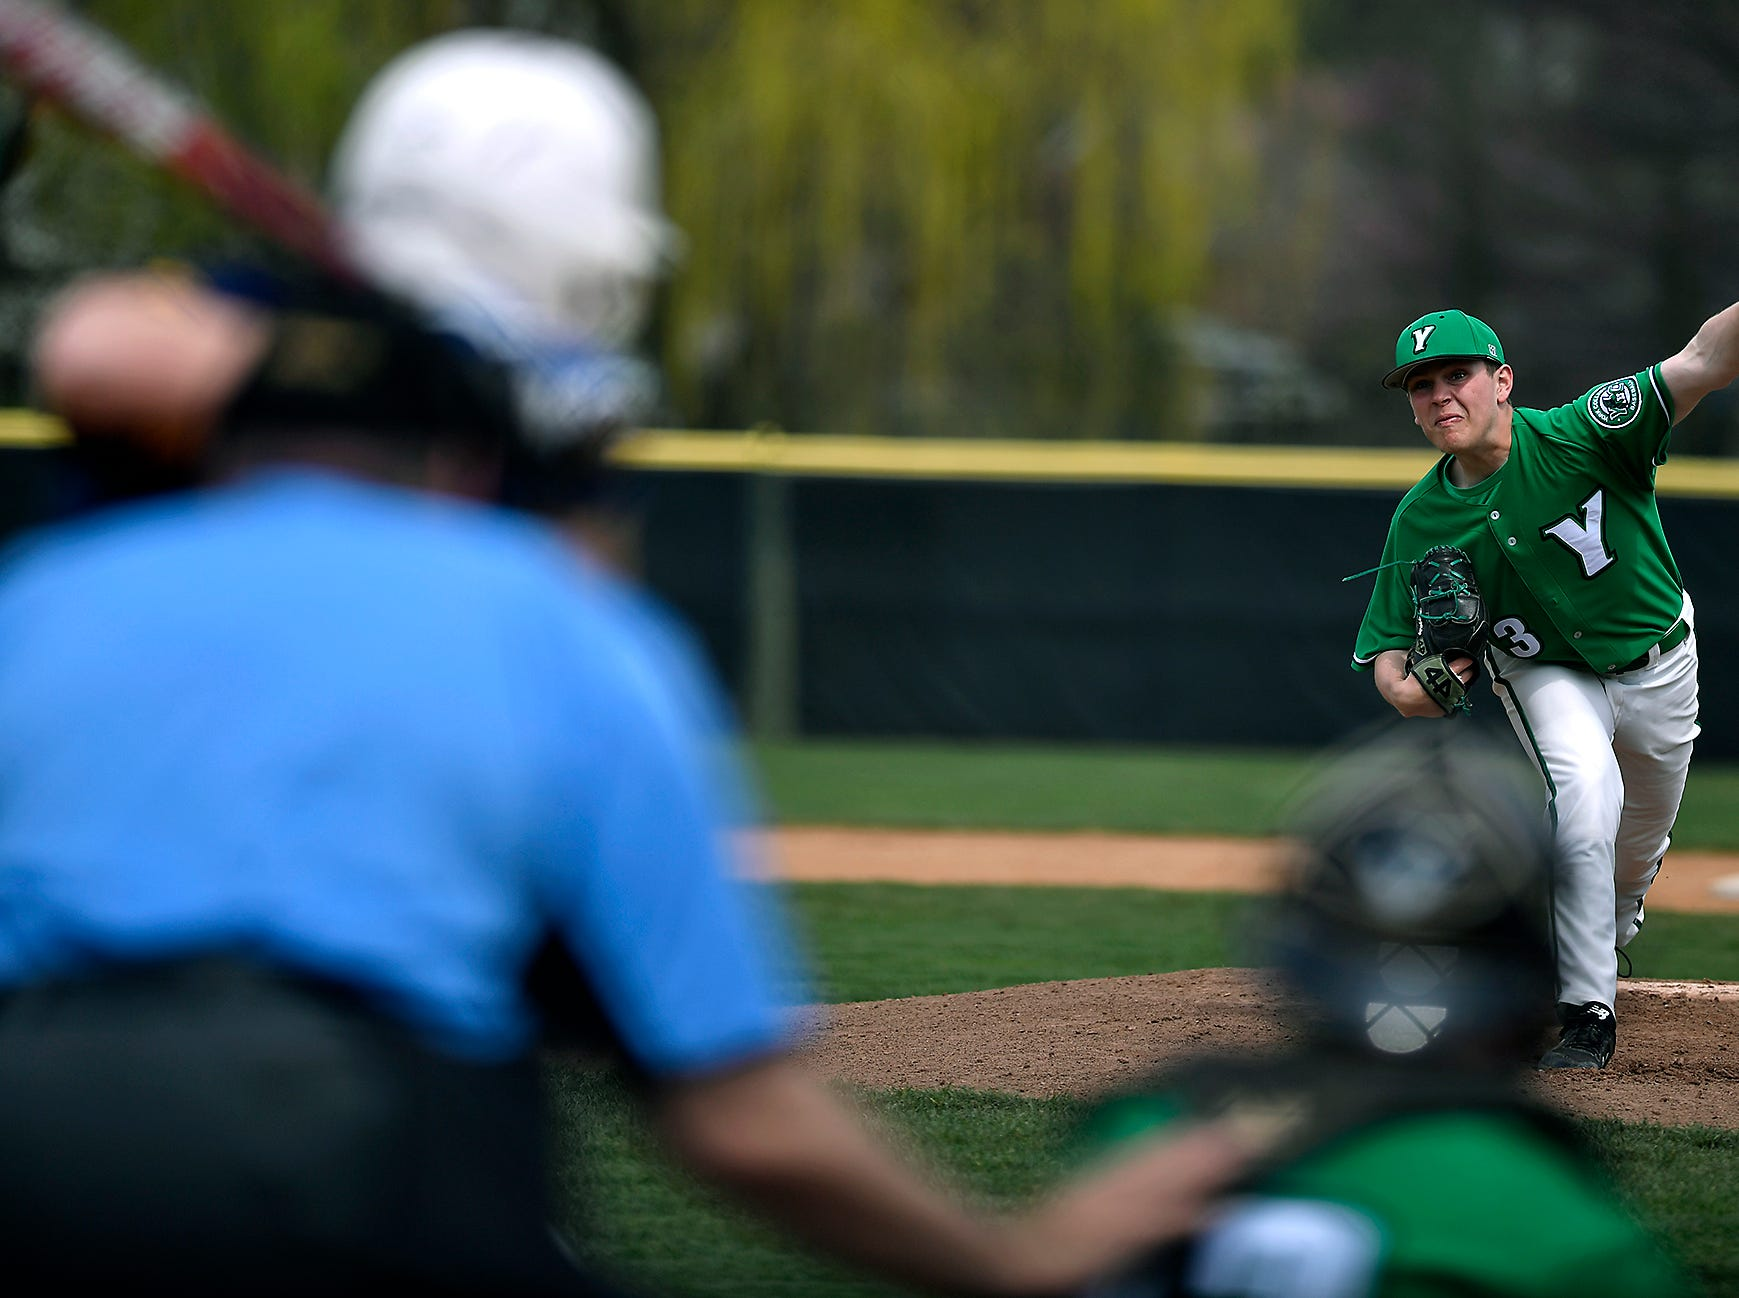 York College lefty pitcher Brandon Haggerty delivers against St. Mary's, Sunday, April 7, 2019.John A. Pavoncello photo